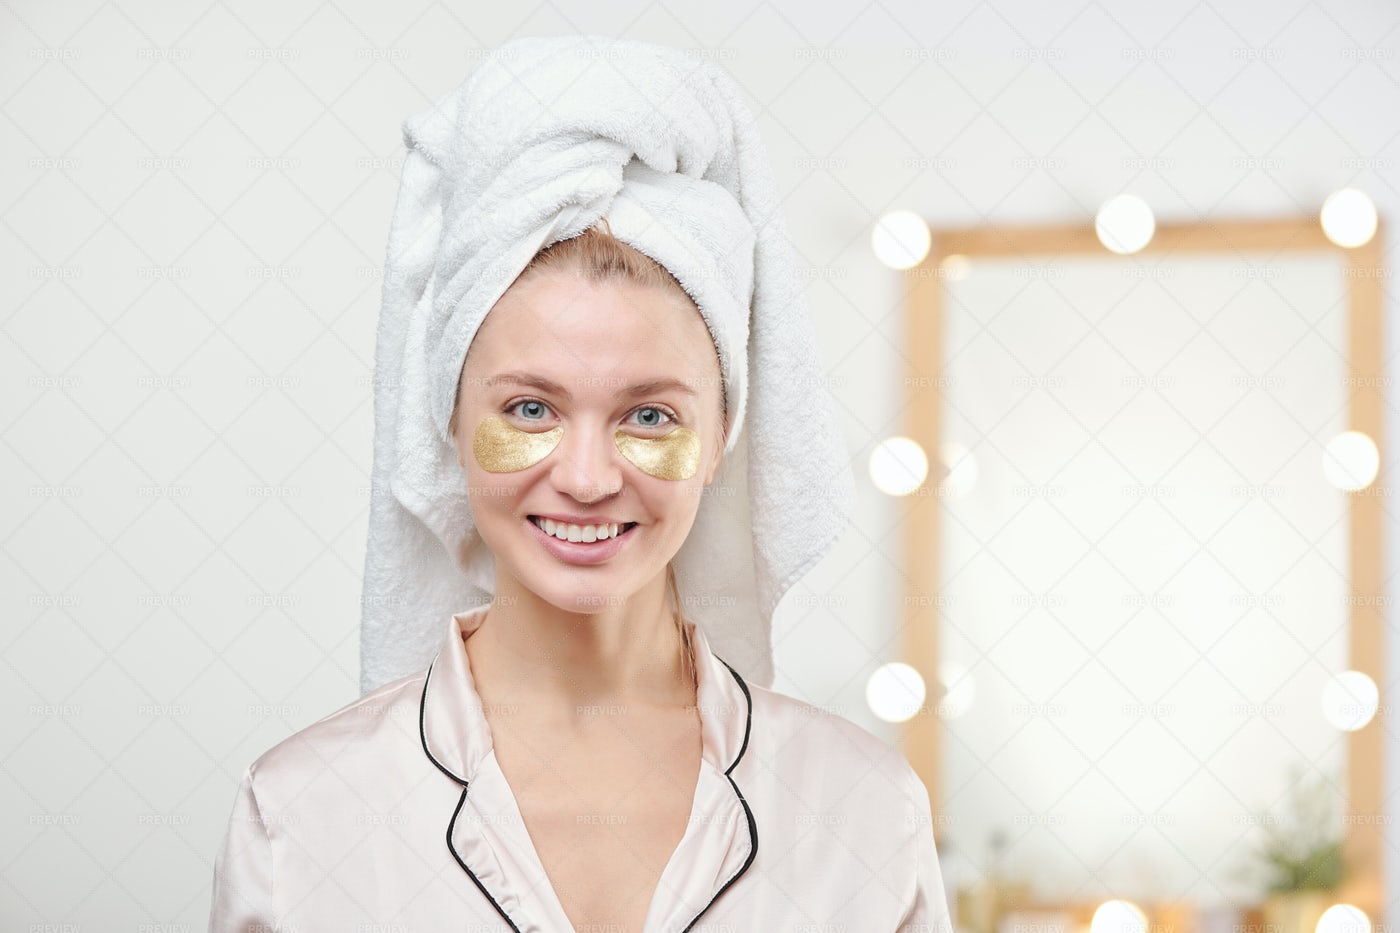 Pretty Young Smiling Female With...: Stock Photos